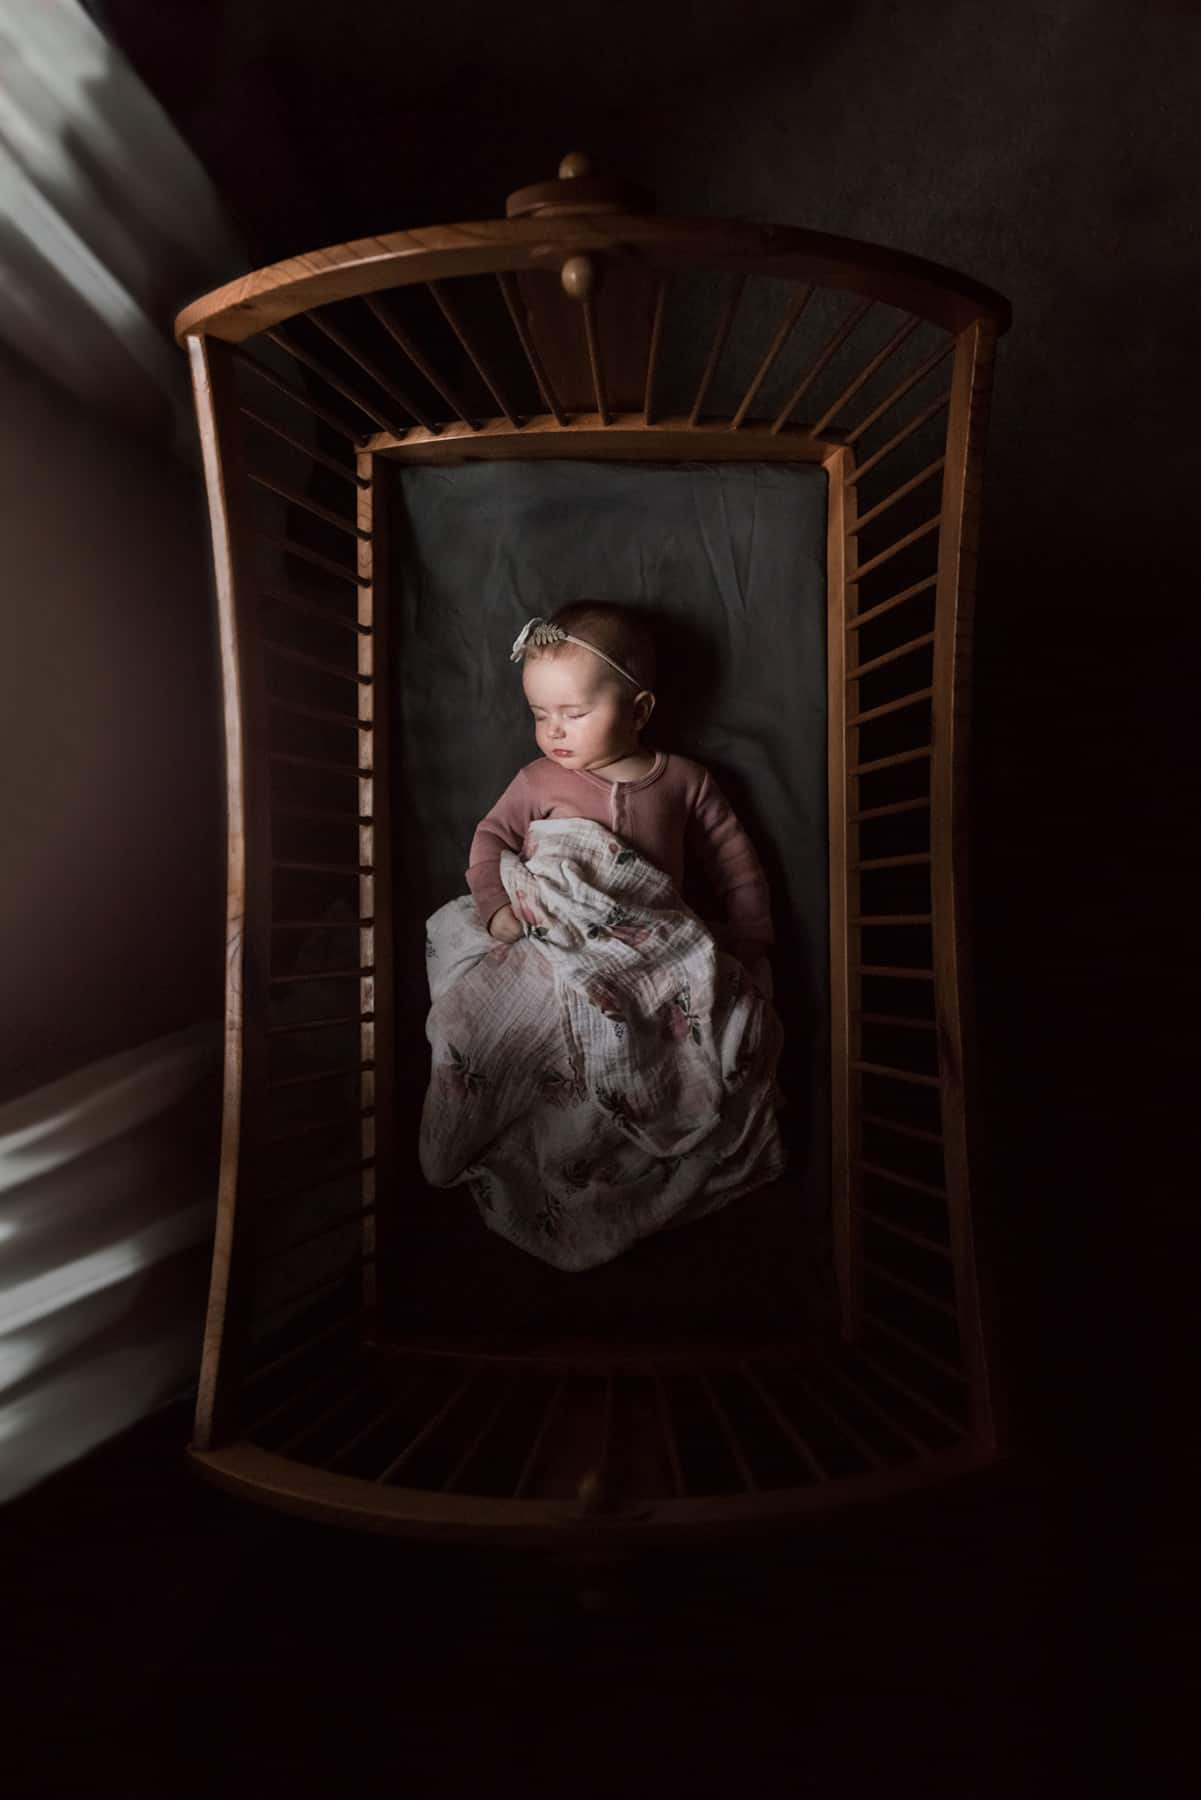 Over the Top photo of a baby in a crib